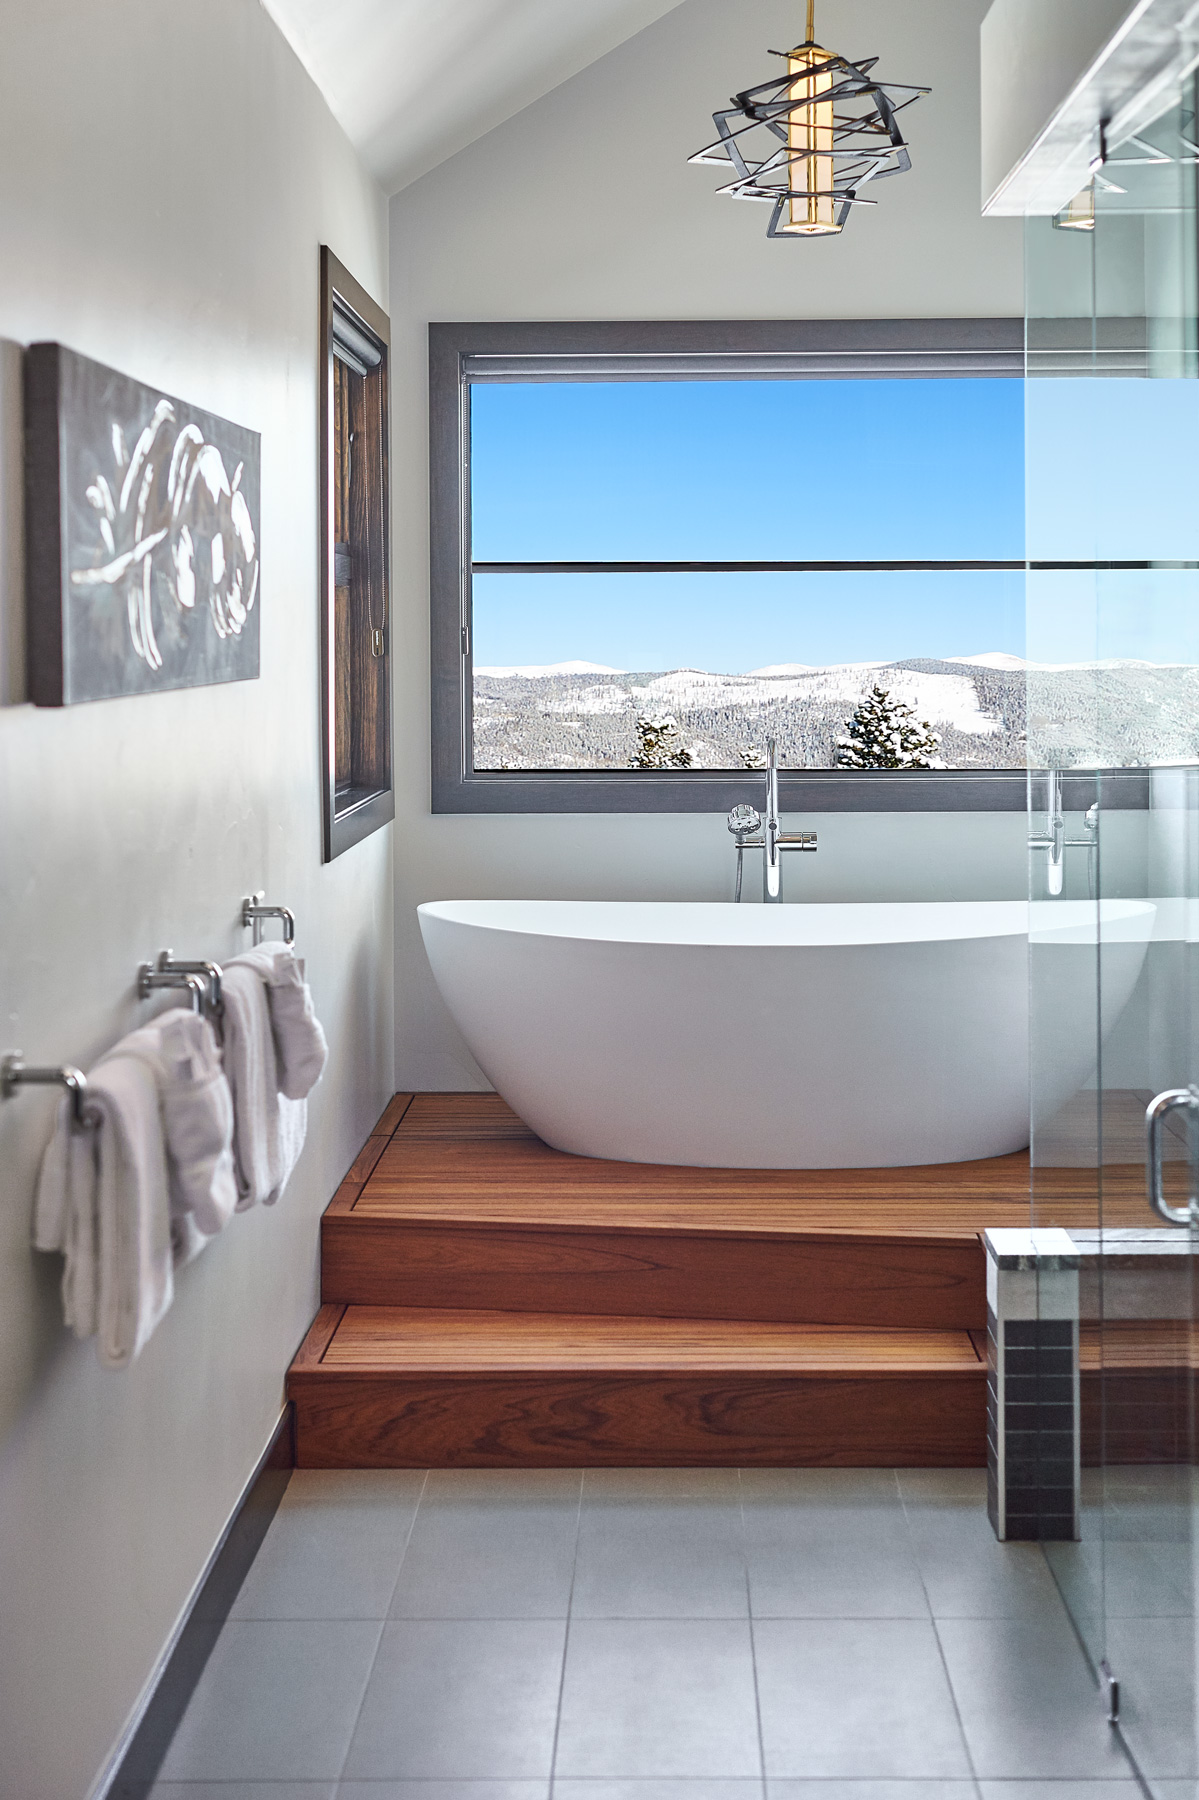 Freestanding bathtub mountain glass shower view.jpg